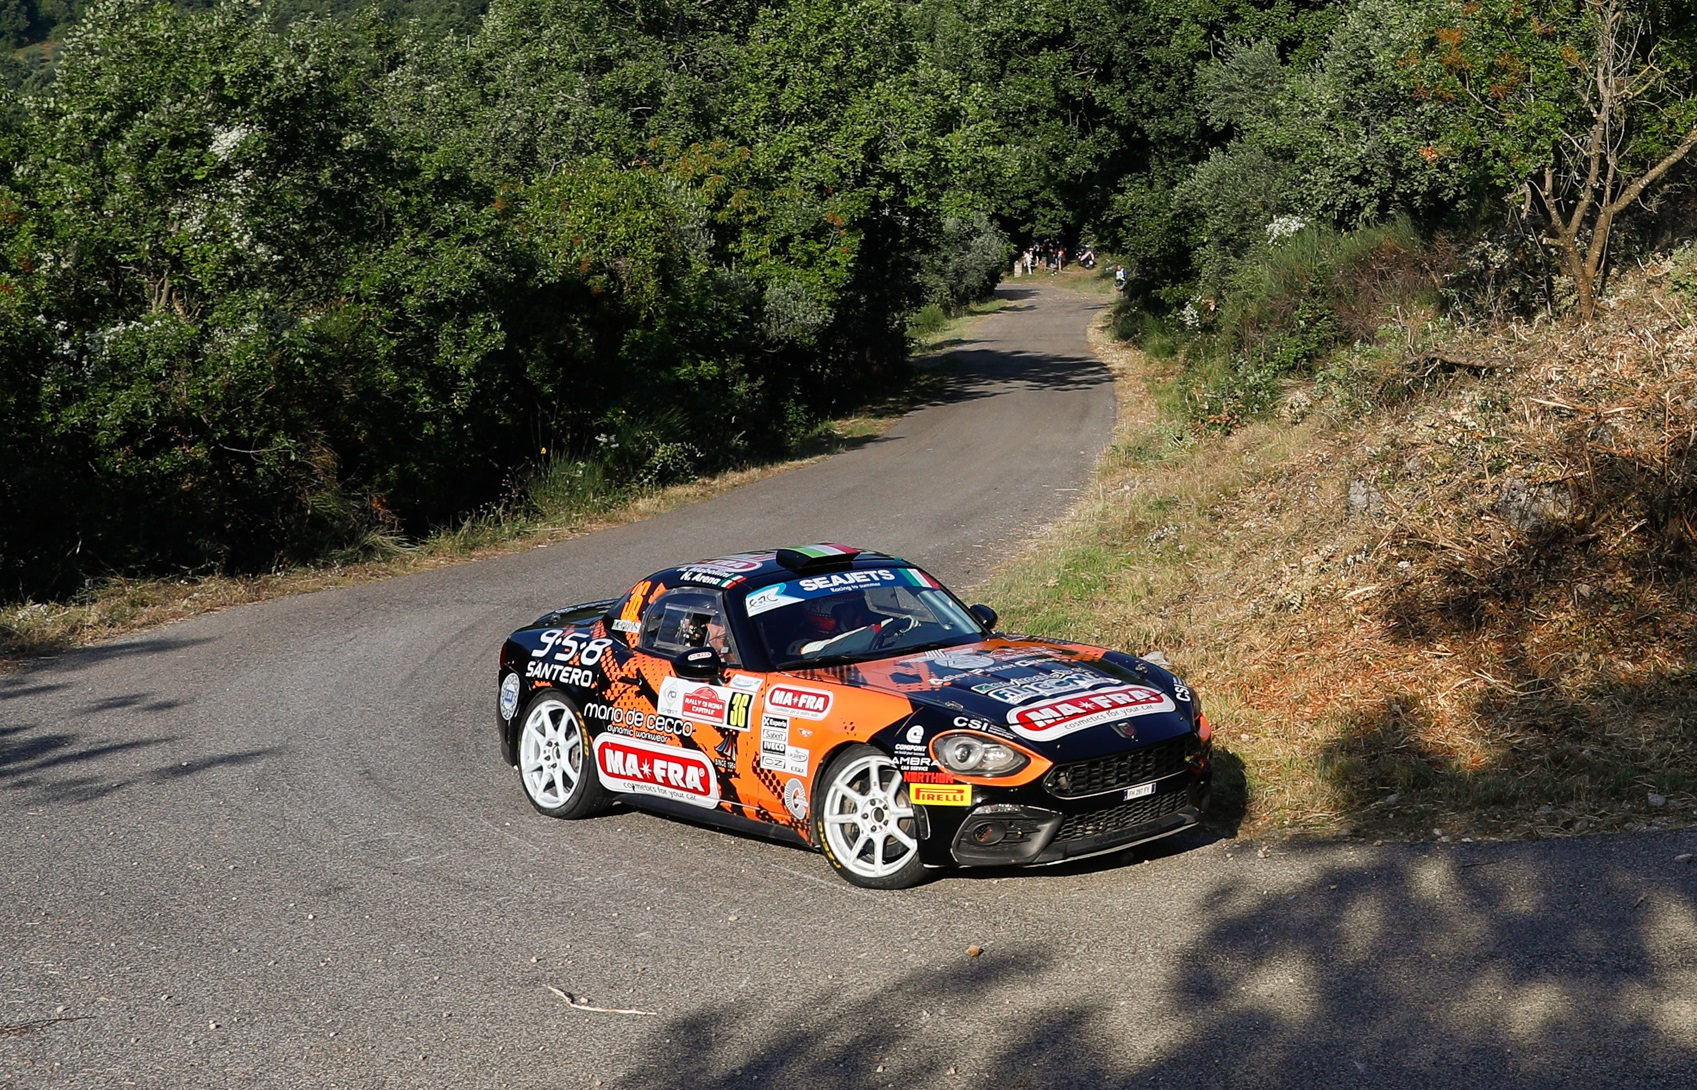 36 MABELLINI Andrea (ITA), MOMETTI Roberto (ITA), Team Napoca Rally Academy, Abarth 124 Rally , action    during the 2020 Rally di Roma Capitale, 1st round of the 2020 FIA European Rally Championship, from July 24 to 26, 2020 in Rome, Italy - Photo Frédéric Le Floc'h / DPPI